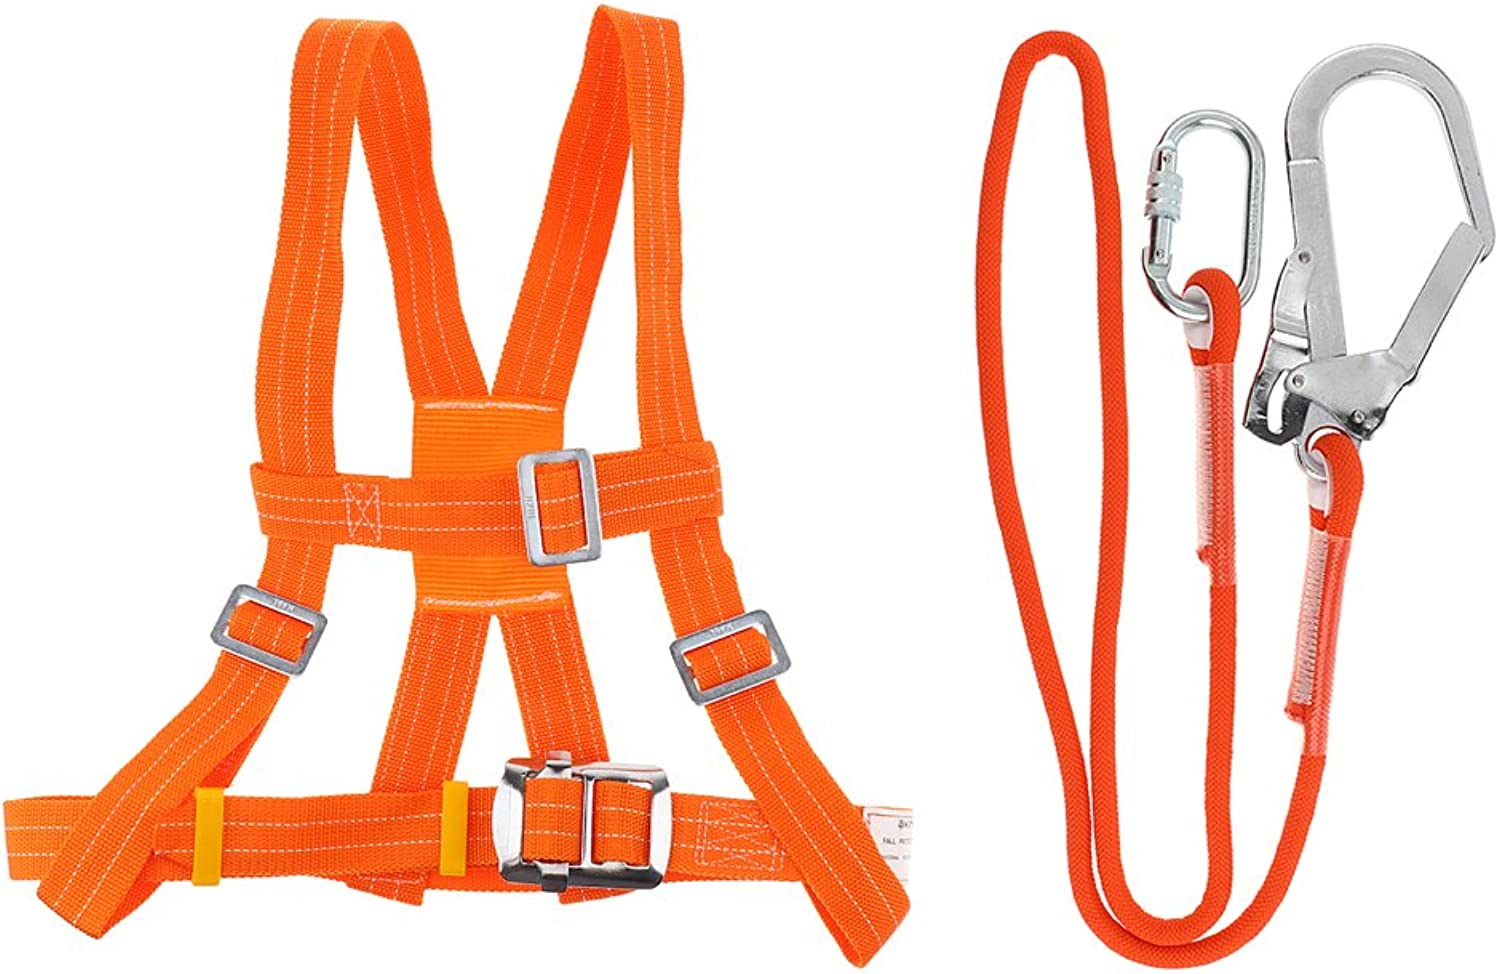 Homyl Outdoor Professional Tool Climbing Waist Chest Harness Safety Belt Rescue Rope with Adjust Buckle